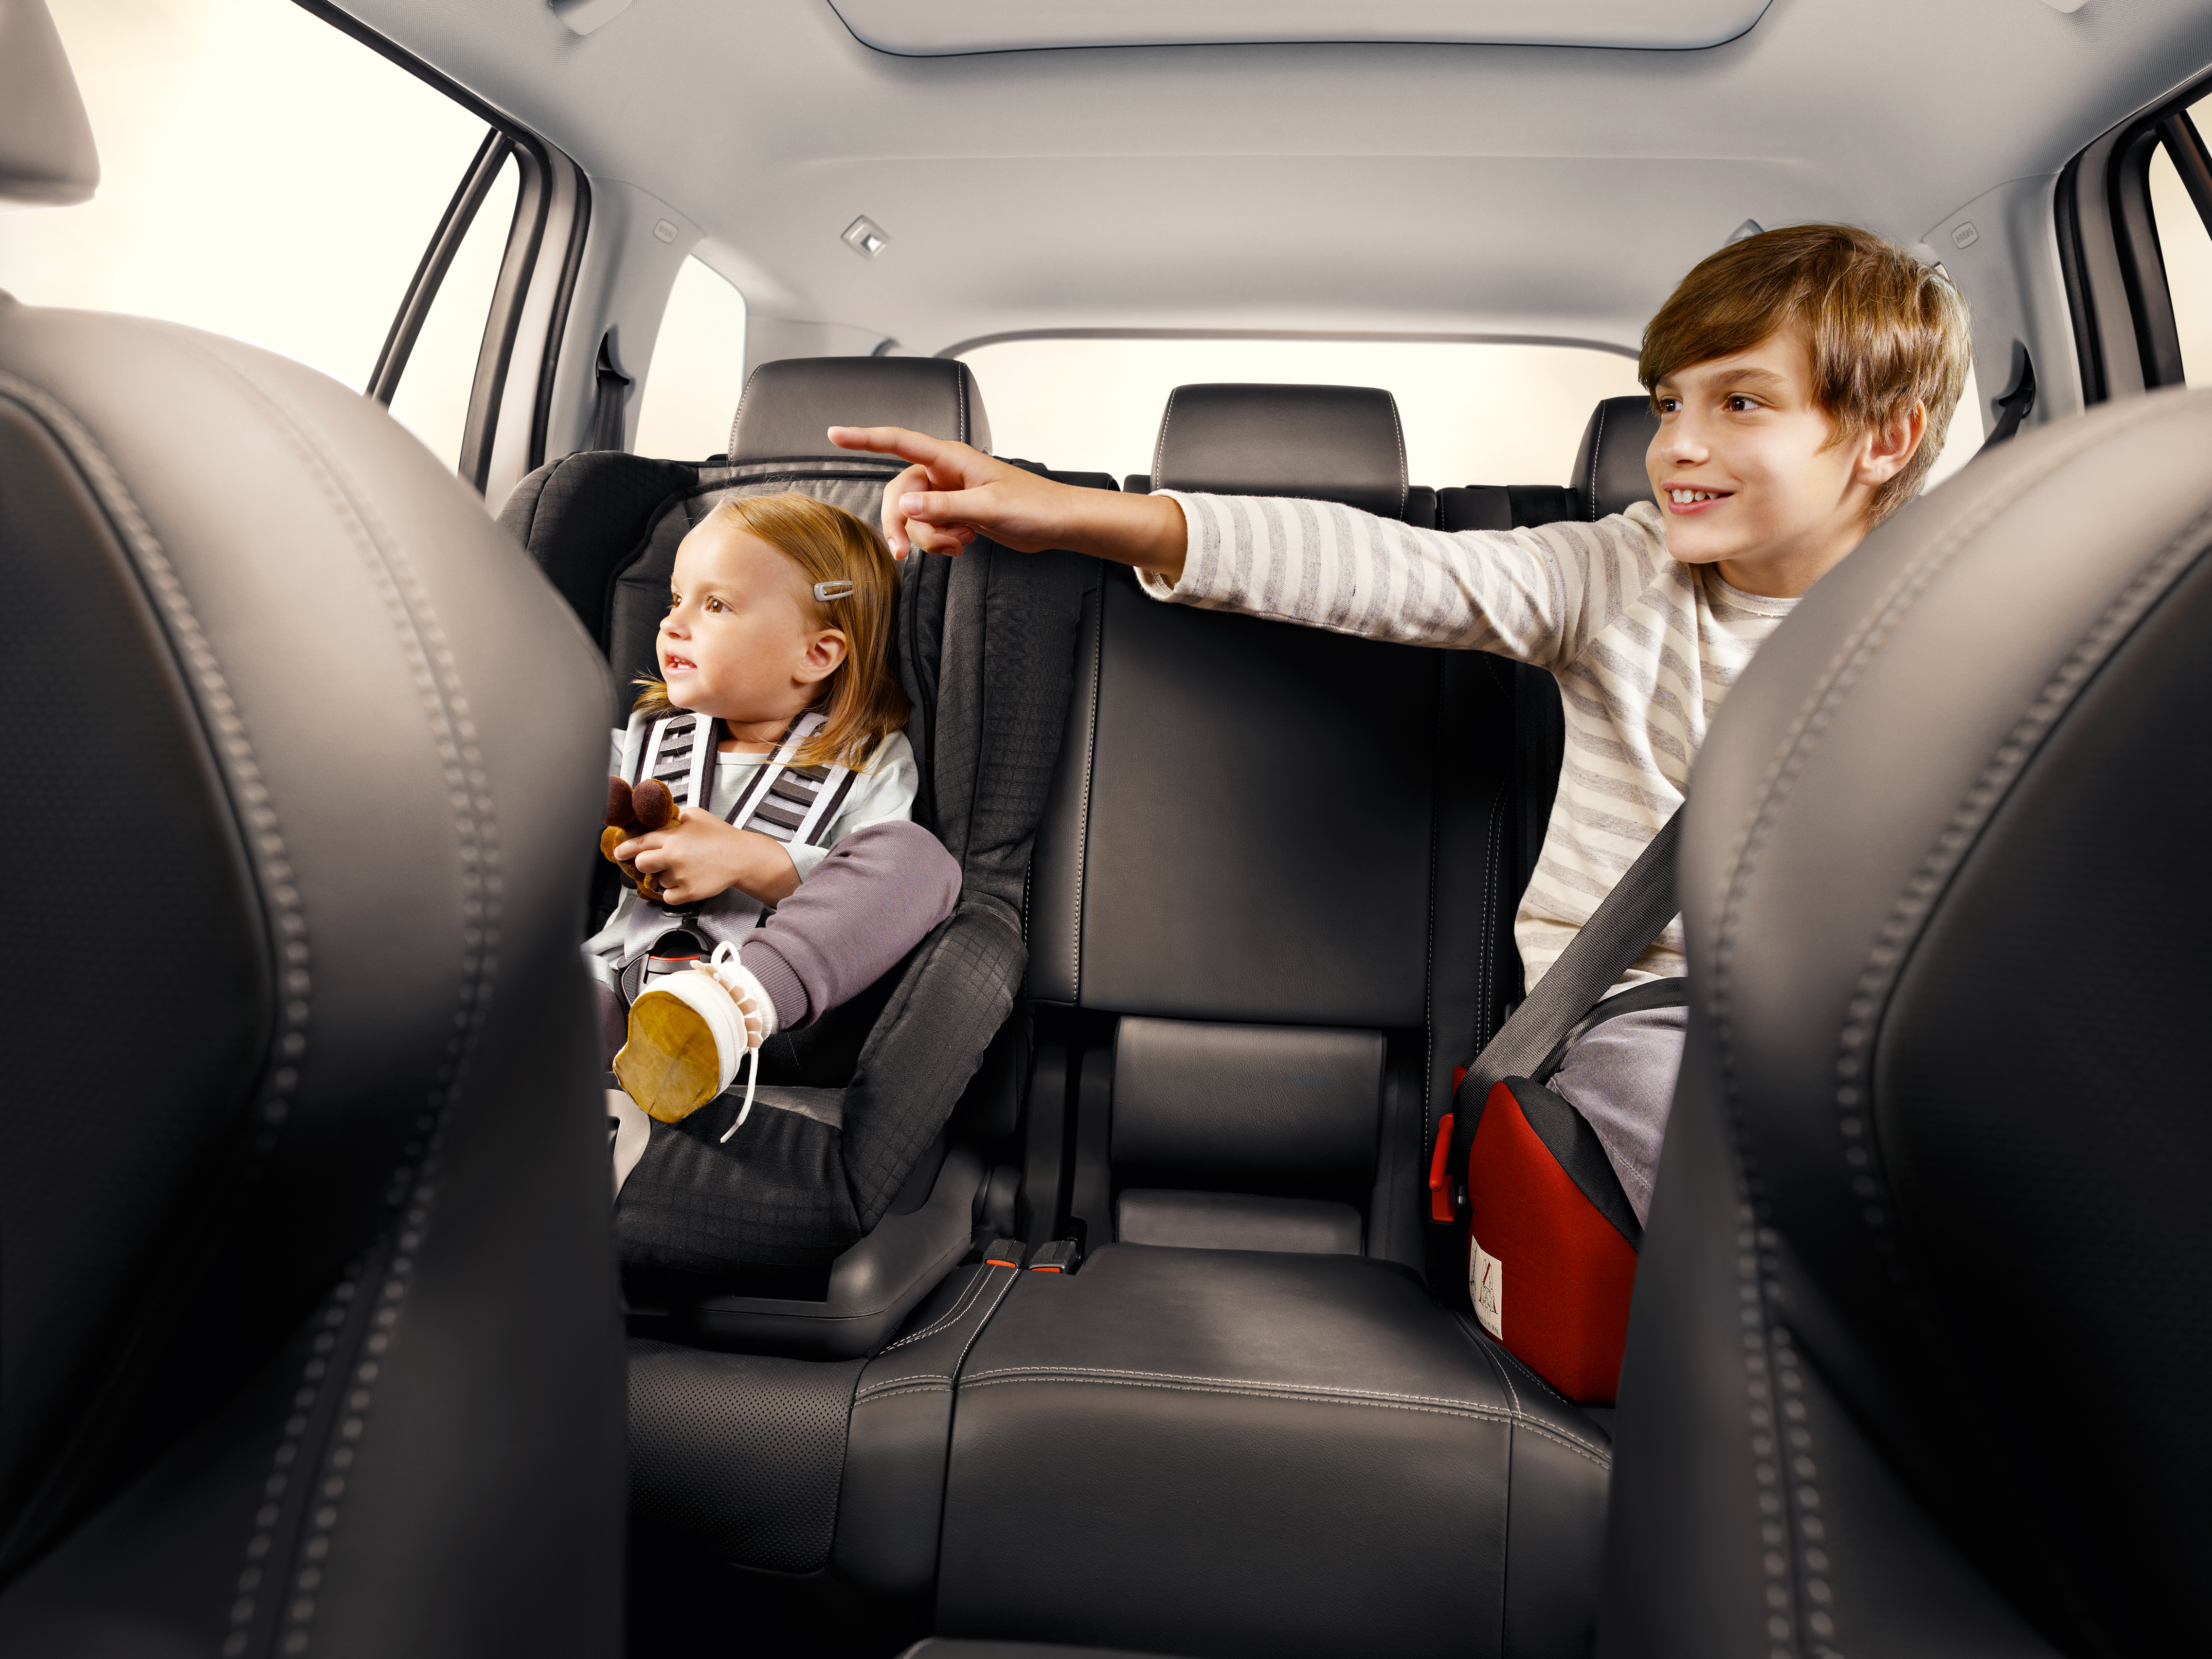 Keep your children in a full seat for as long as possible, until they grow out of it.